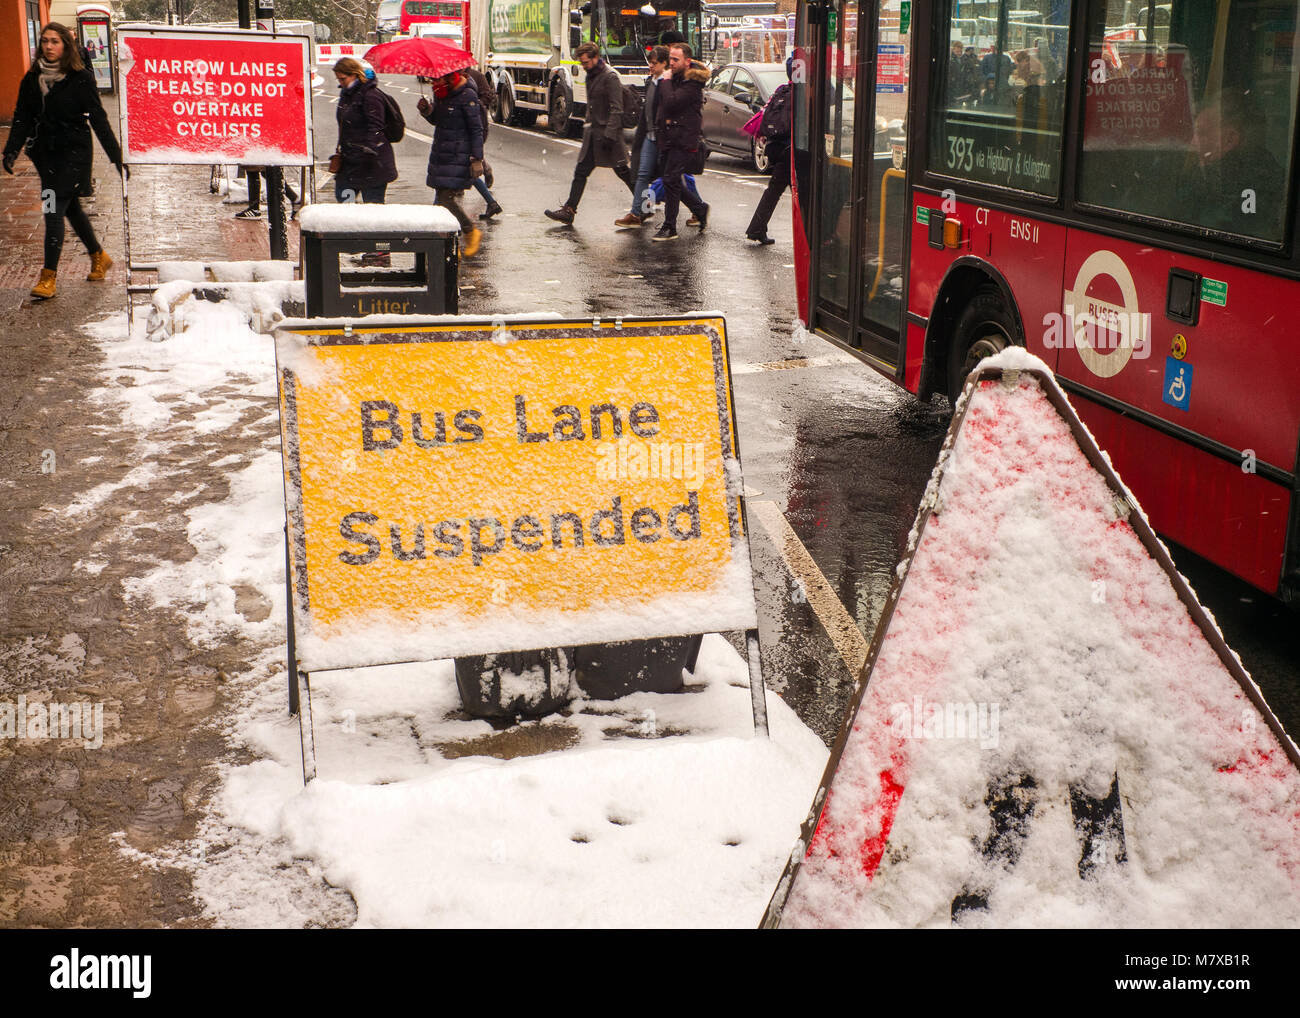 bus lane suspended sign with commuters and red bus in snow storm London - Stock Image